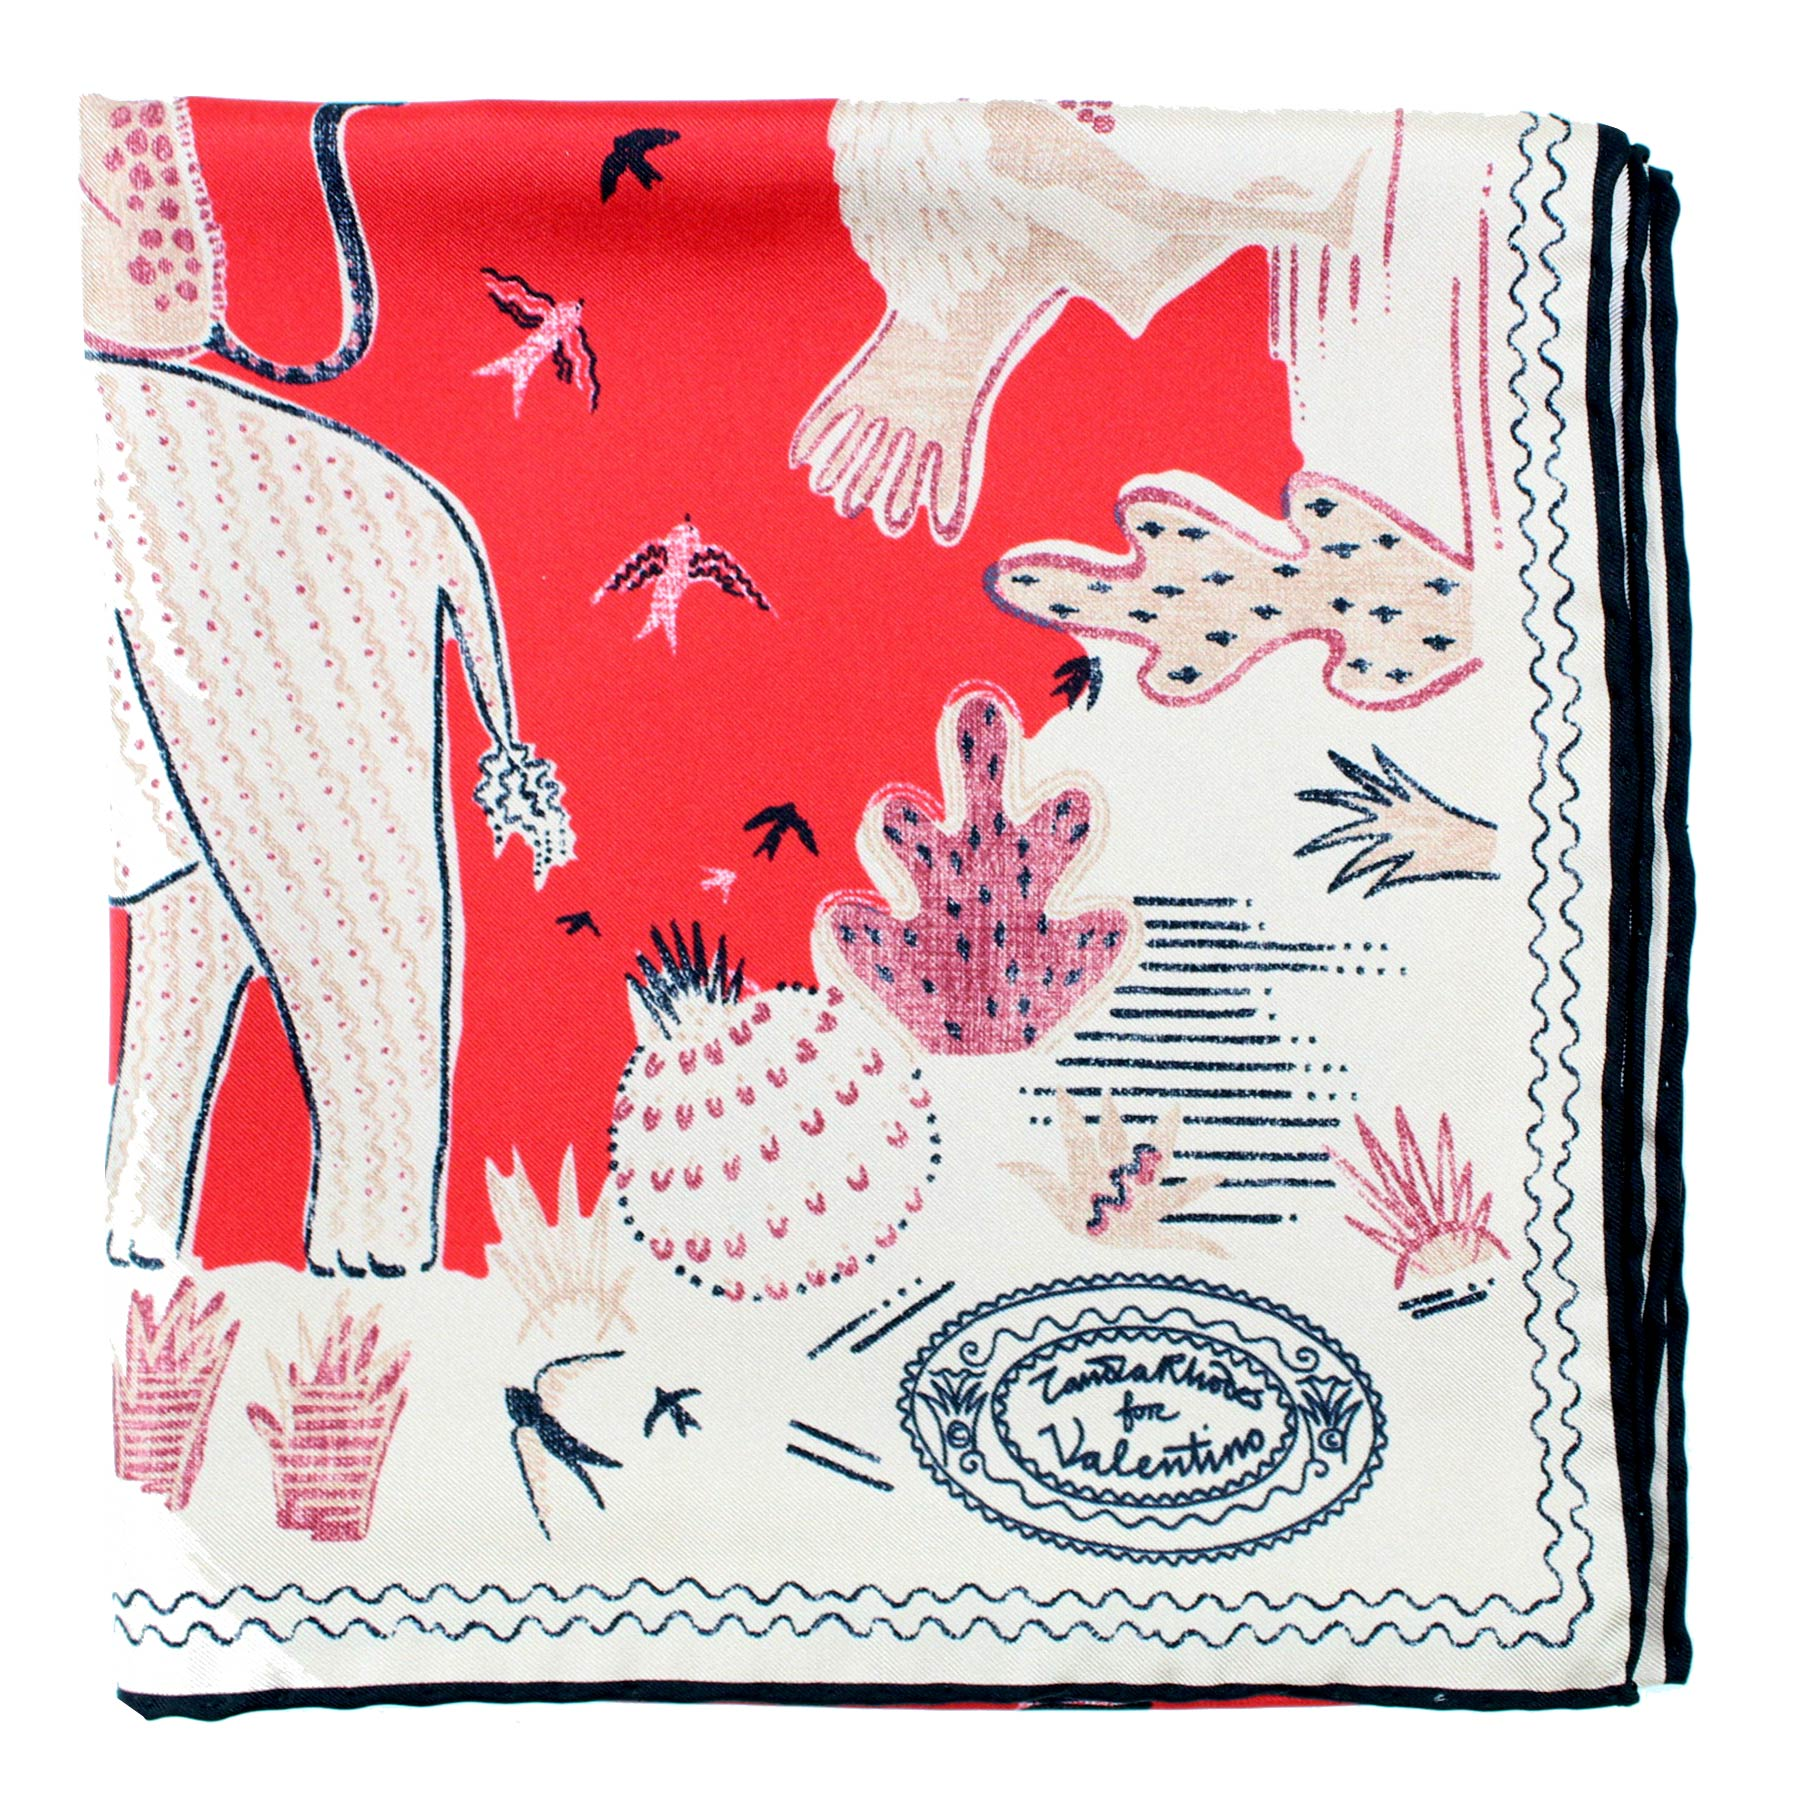 Valentino Scarf Pink Red Animal Drawings - Large Twill Silk Square Scarf